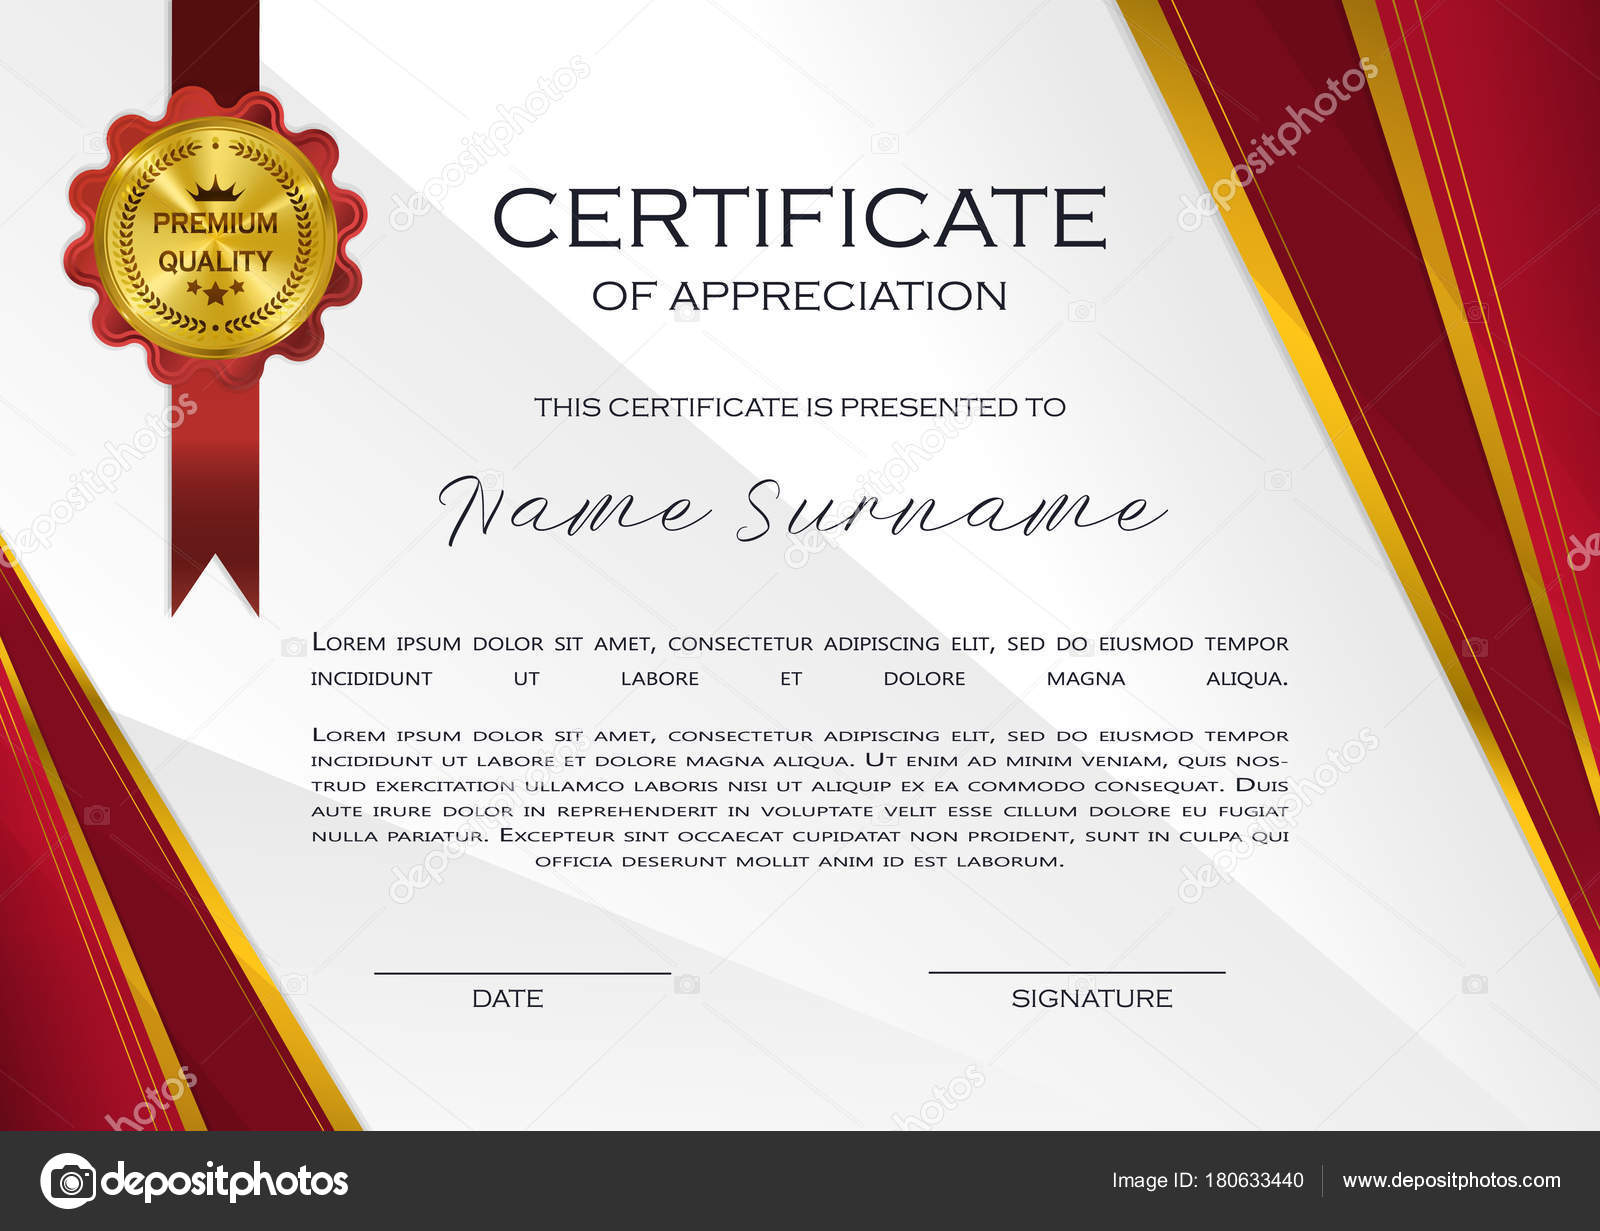 Qualification certificate appreciation design elegant luxury qualification certificate of appreciation design elegant luxury and modern pattern best quality award template with red and golden tapes shapes badge alramifo Image collections